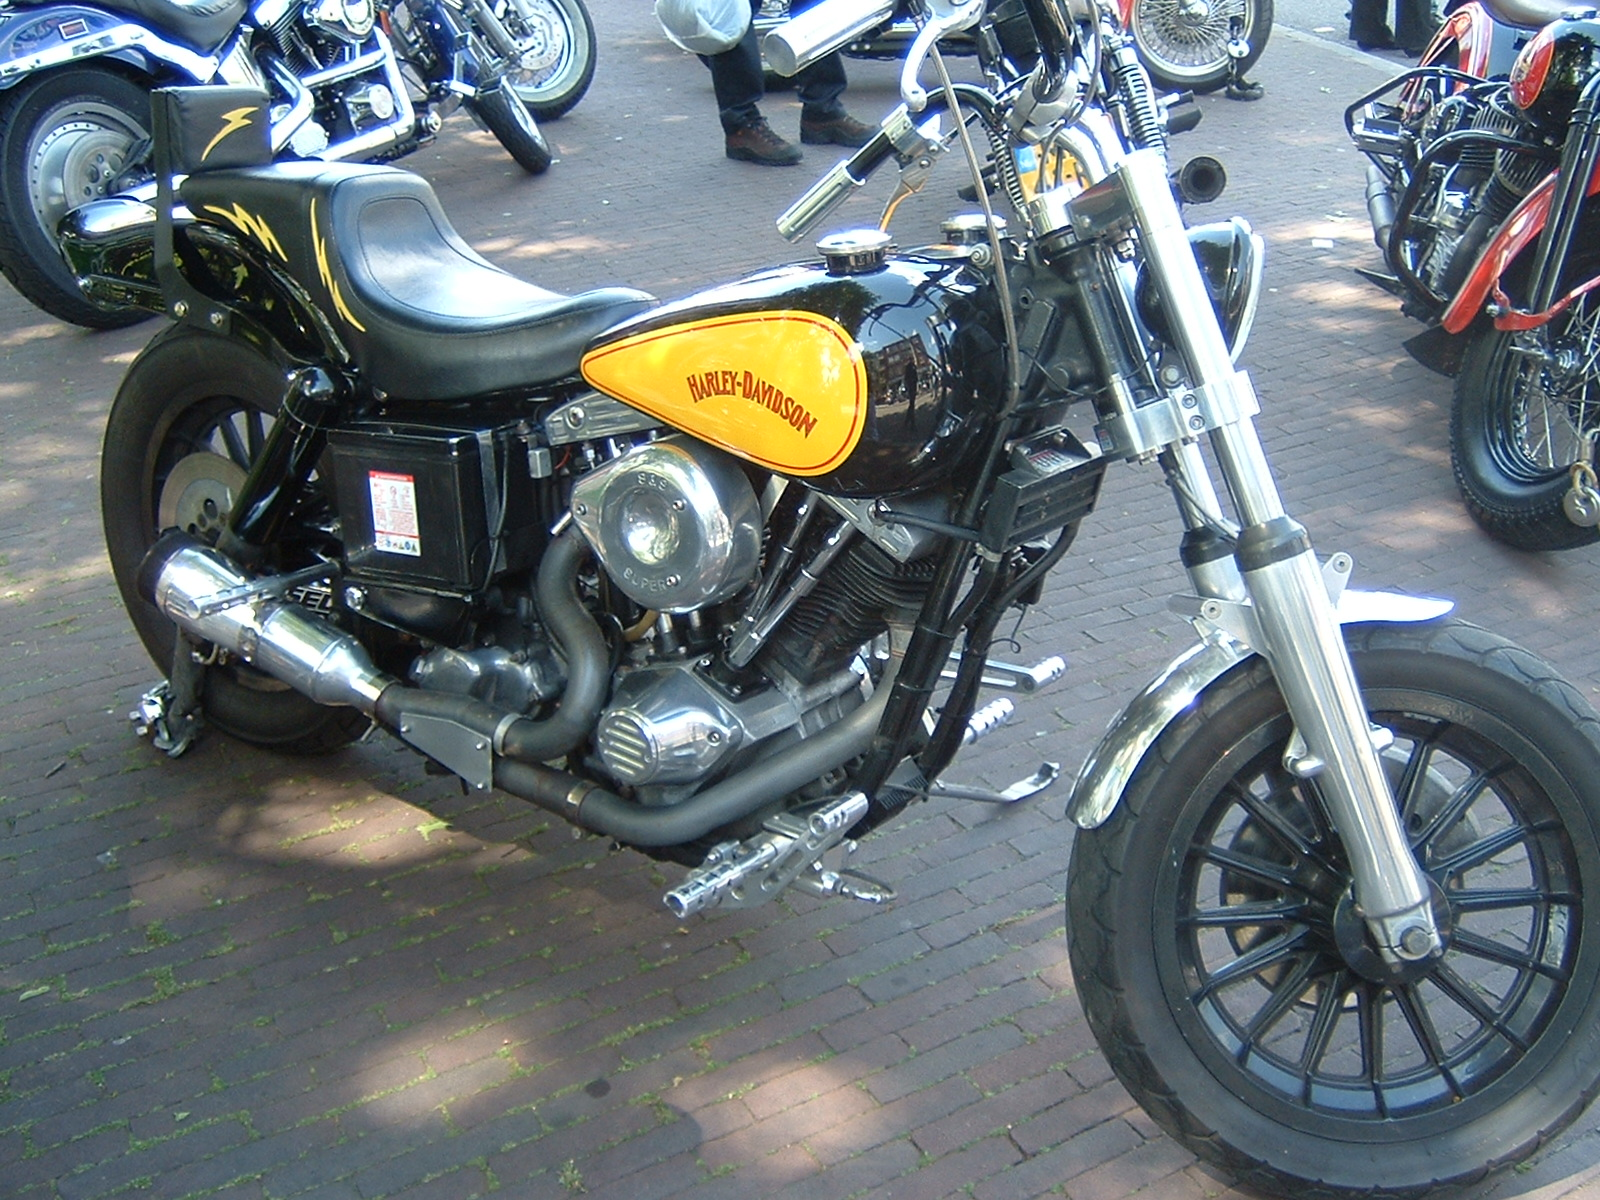 Harley Davidson motorcycles pics specs and list of models